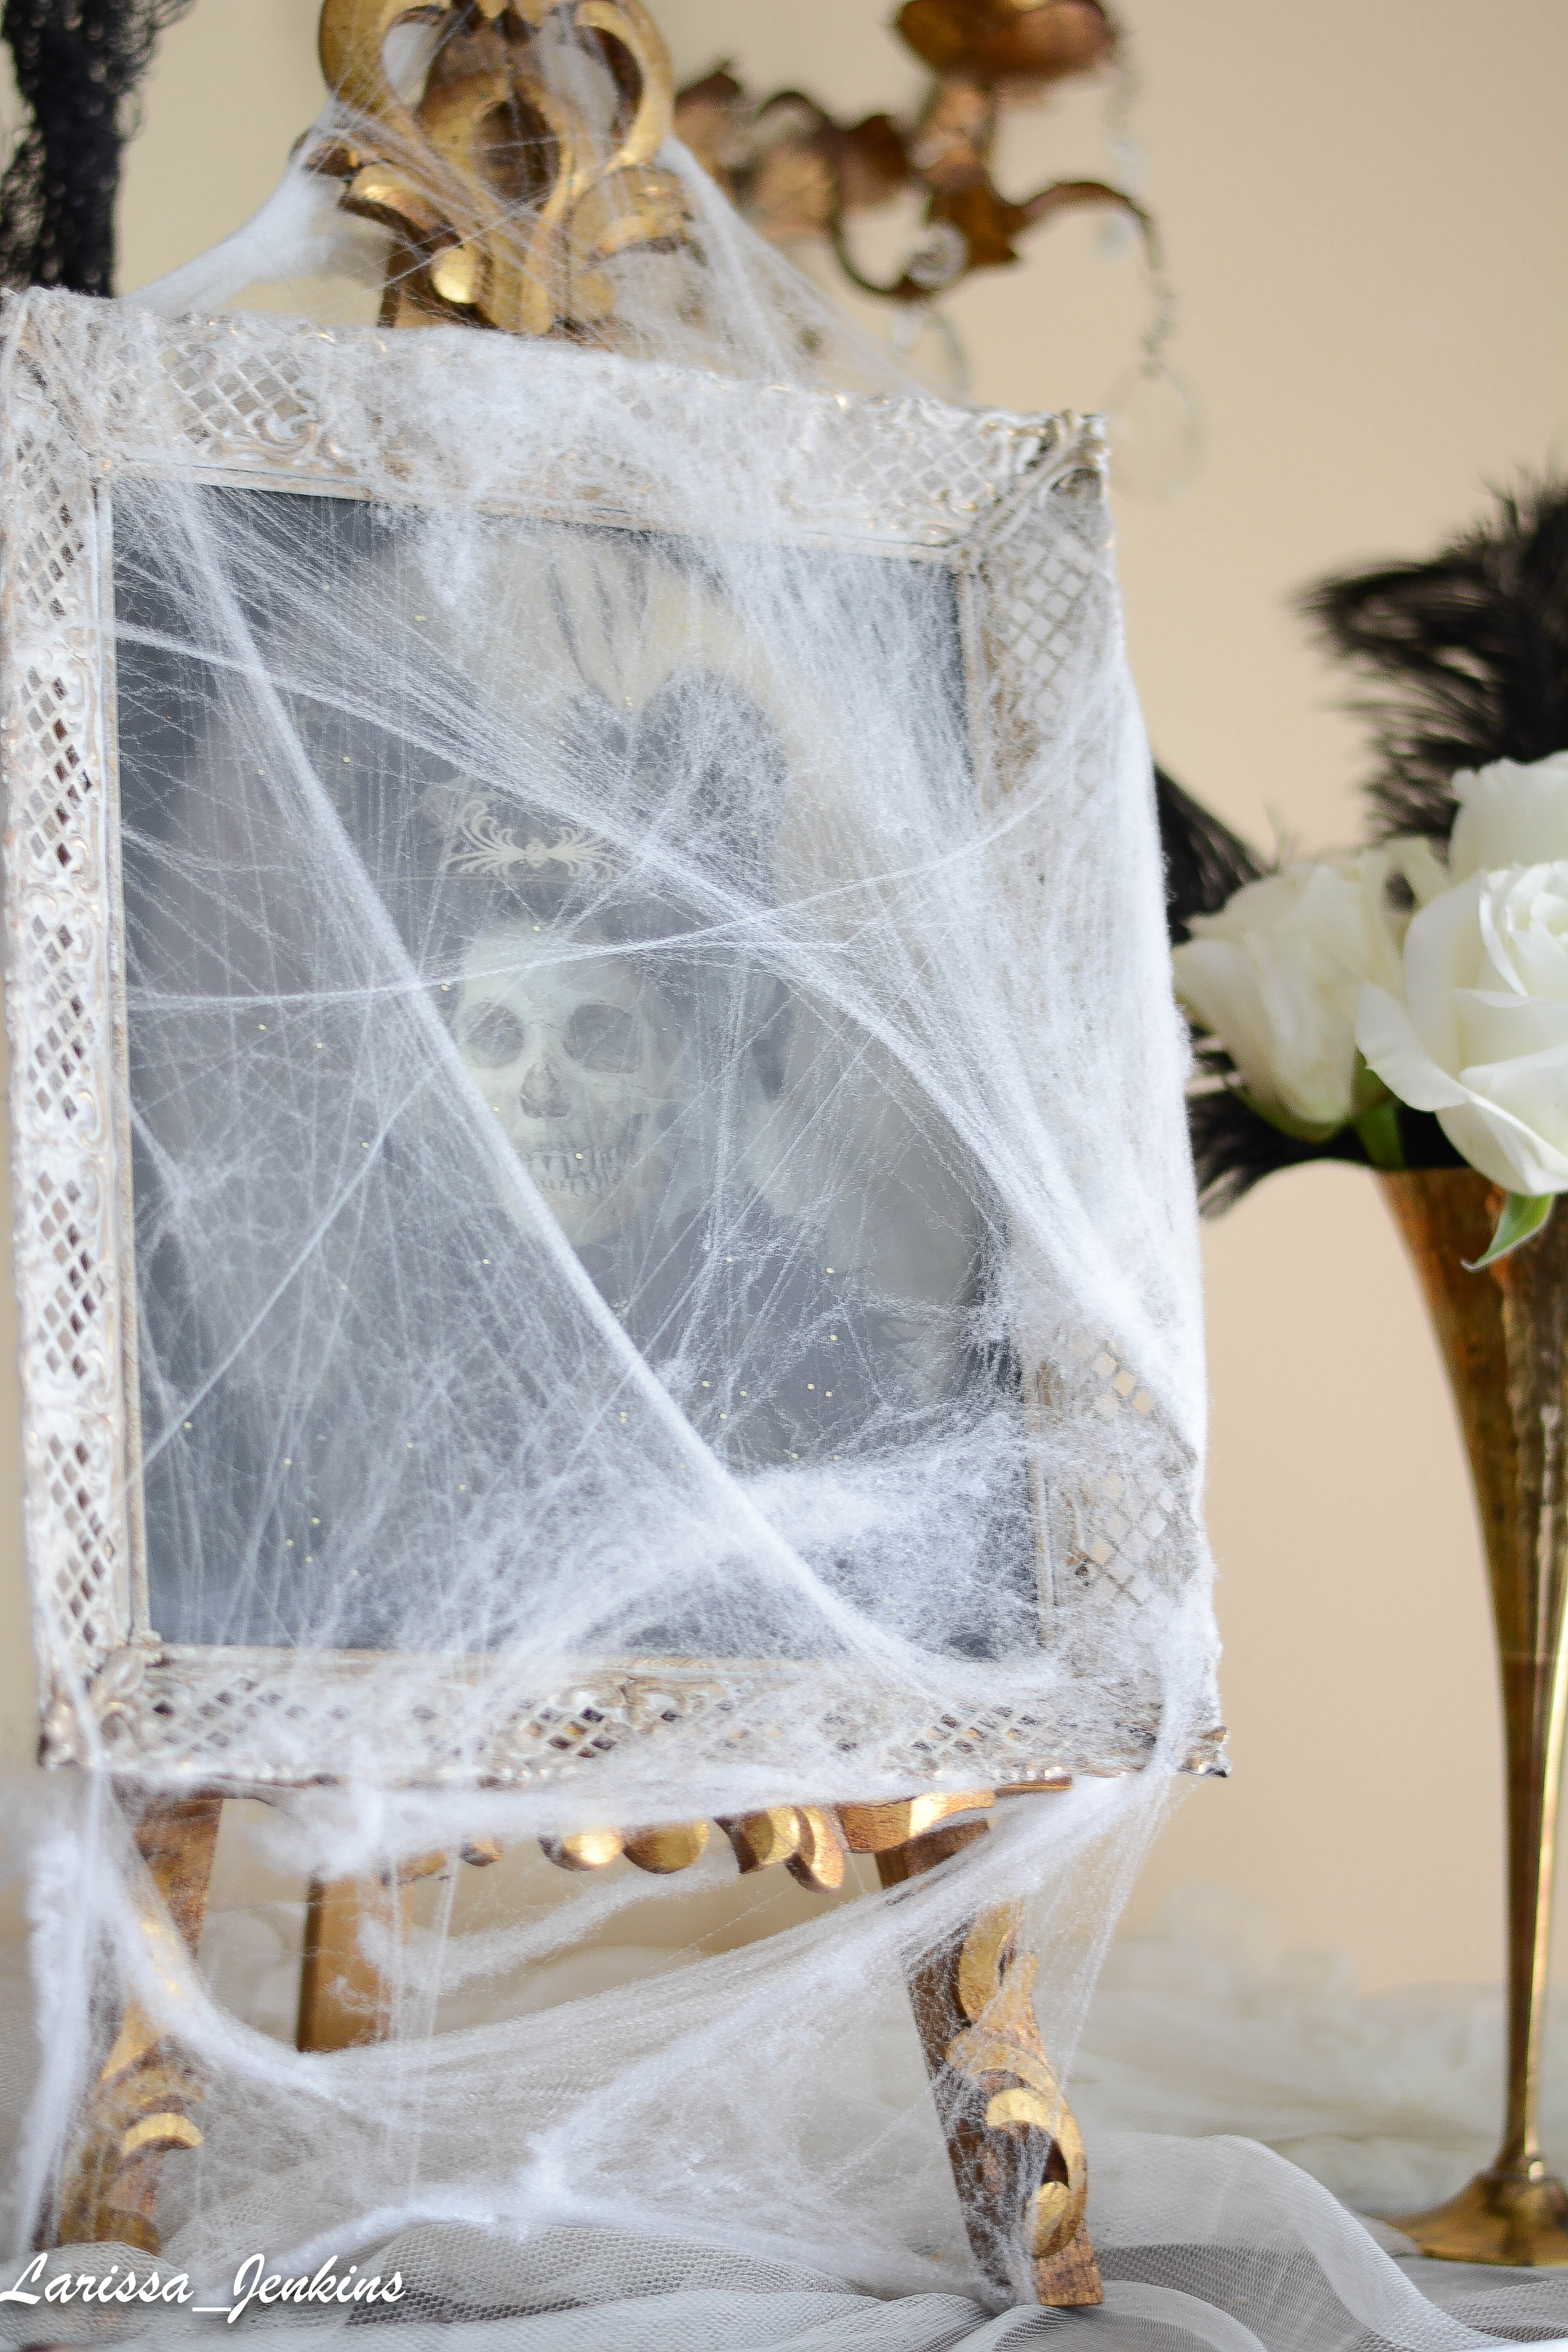 Decorating with Spider webs and creepy antique photos